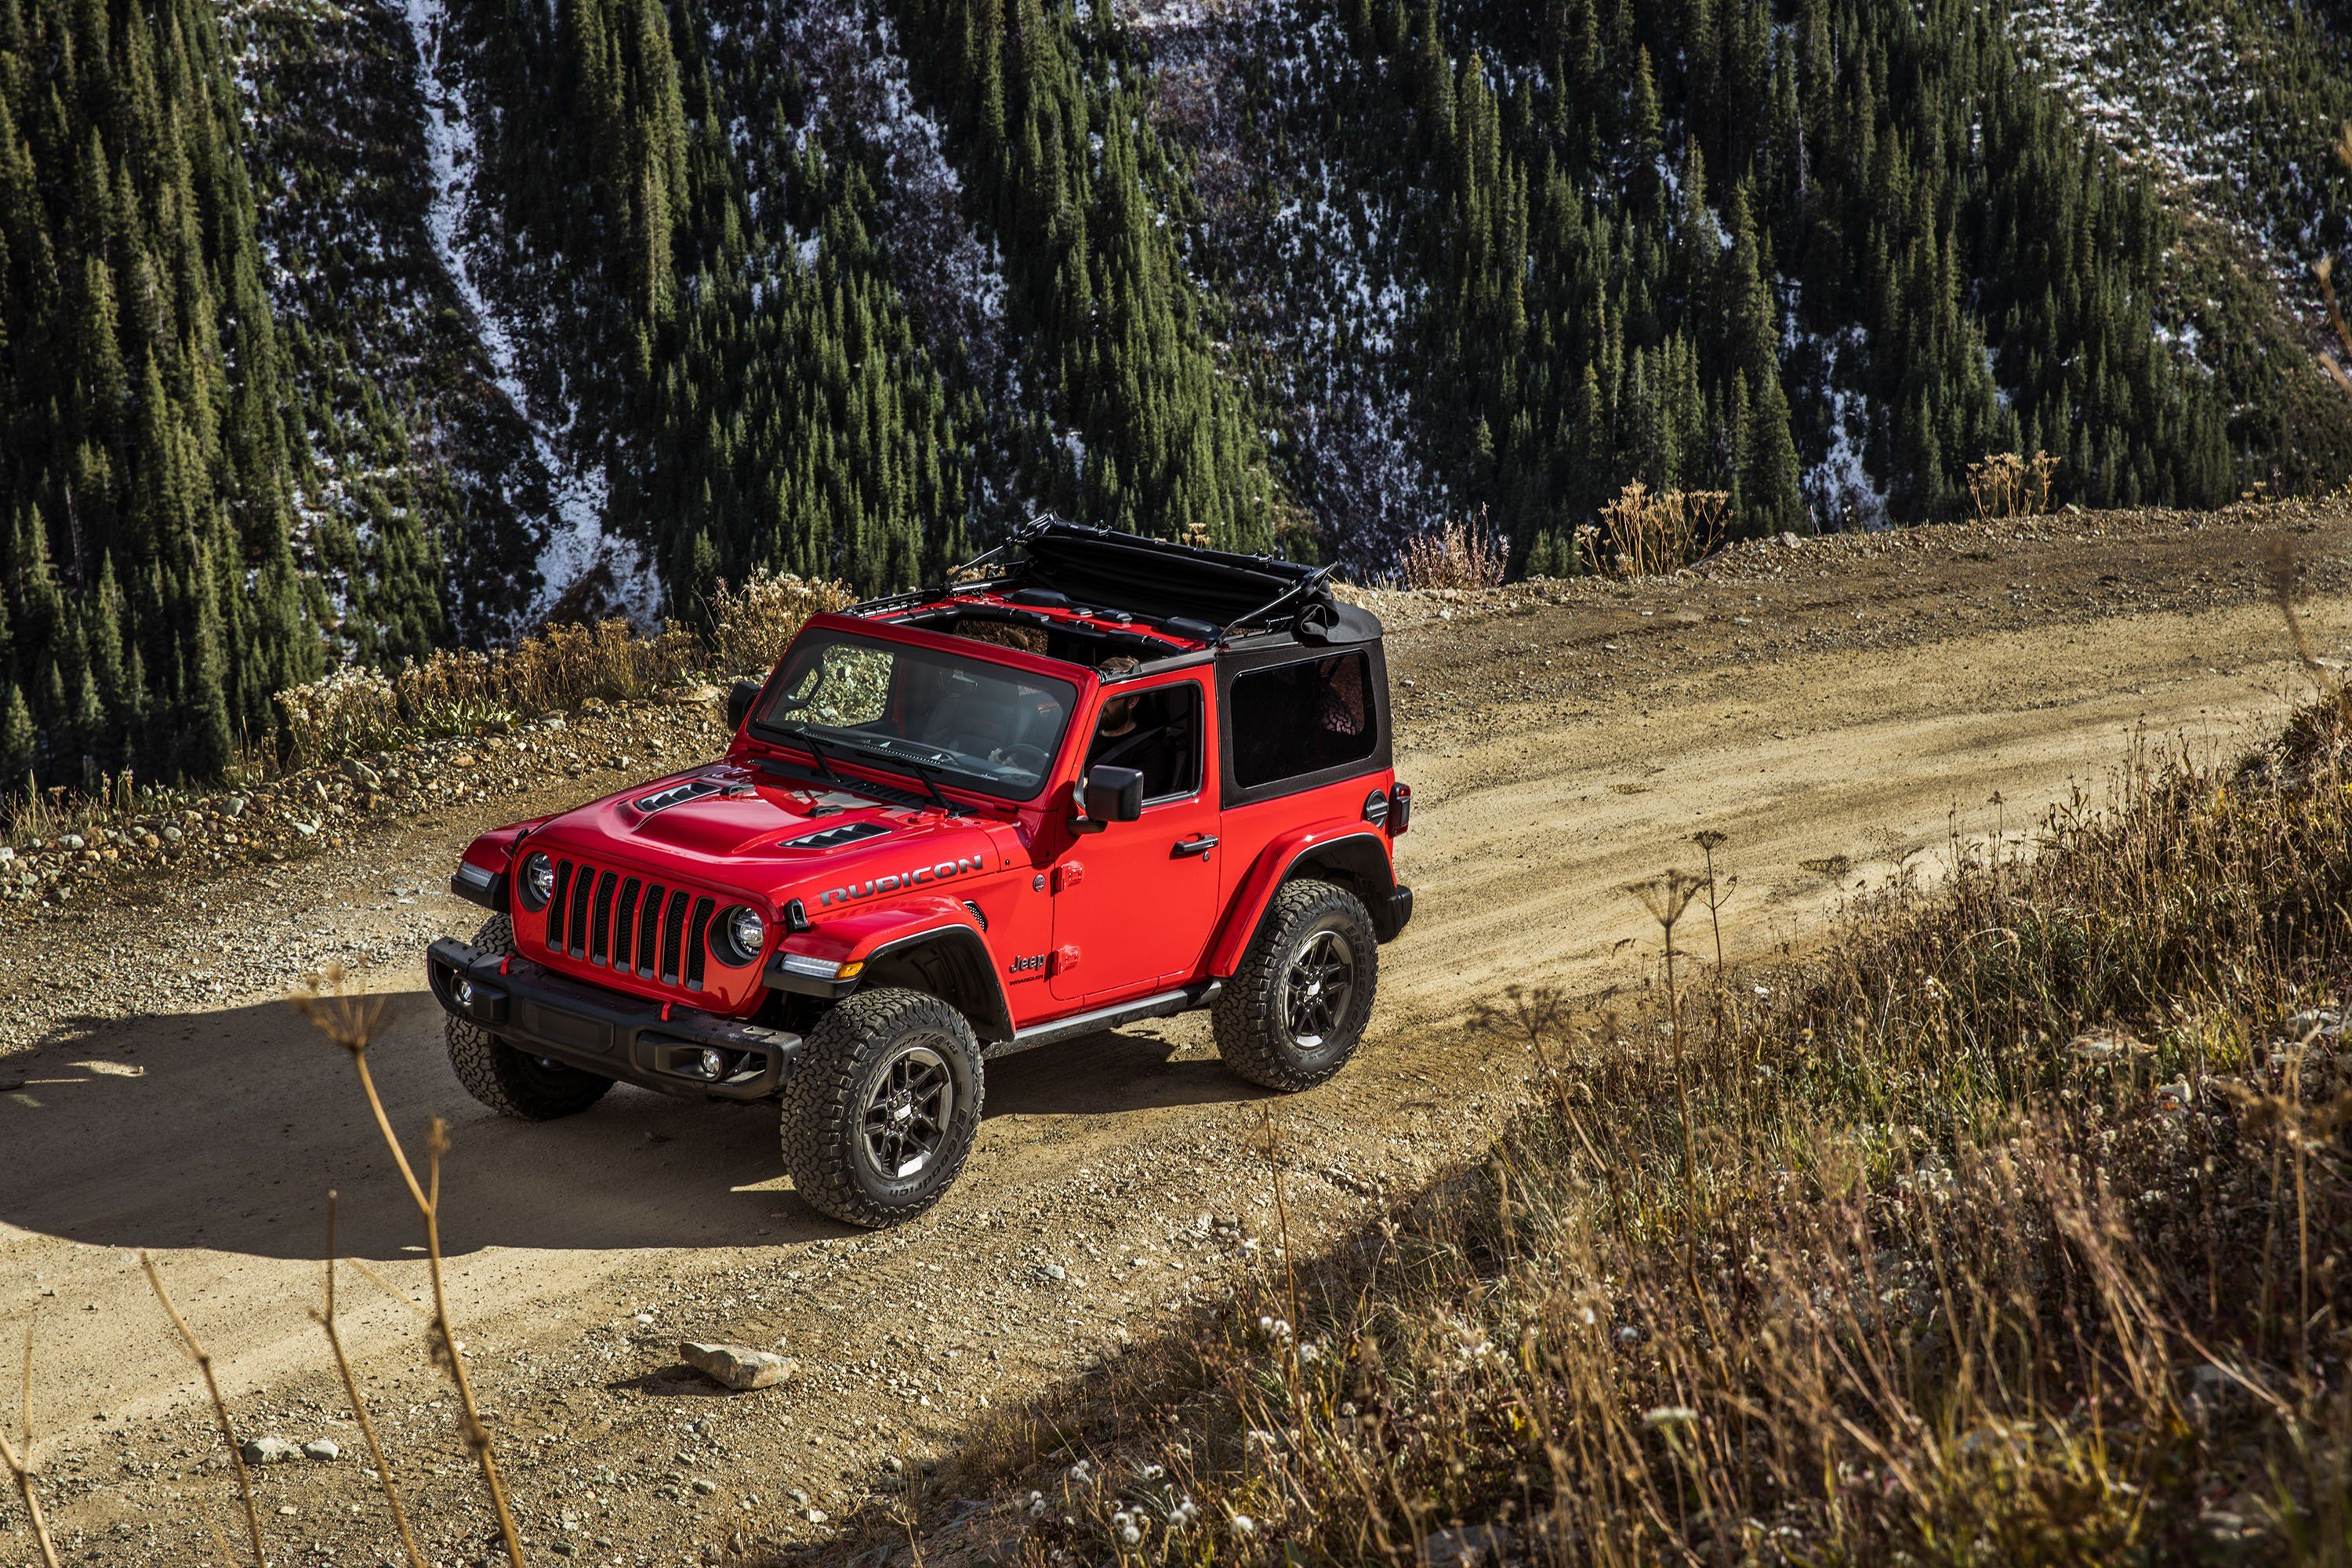 You Can Now Order The 2020 Jeep Wrangler Jl With A Diesel But The Cost Is Almost Unbearable Jeep Wrangler Jeep Wrangler Rubicon Jeep Wrangler Unlimited